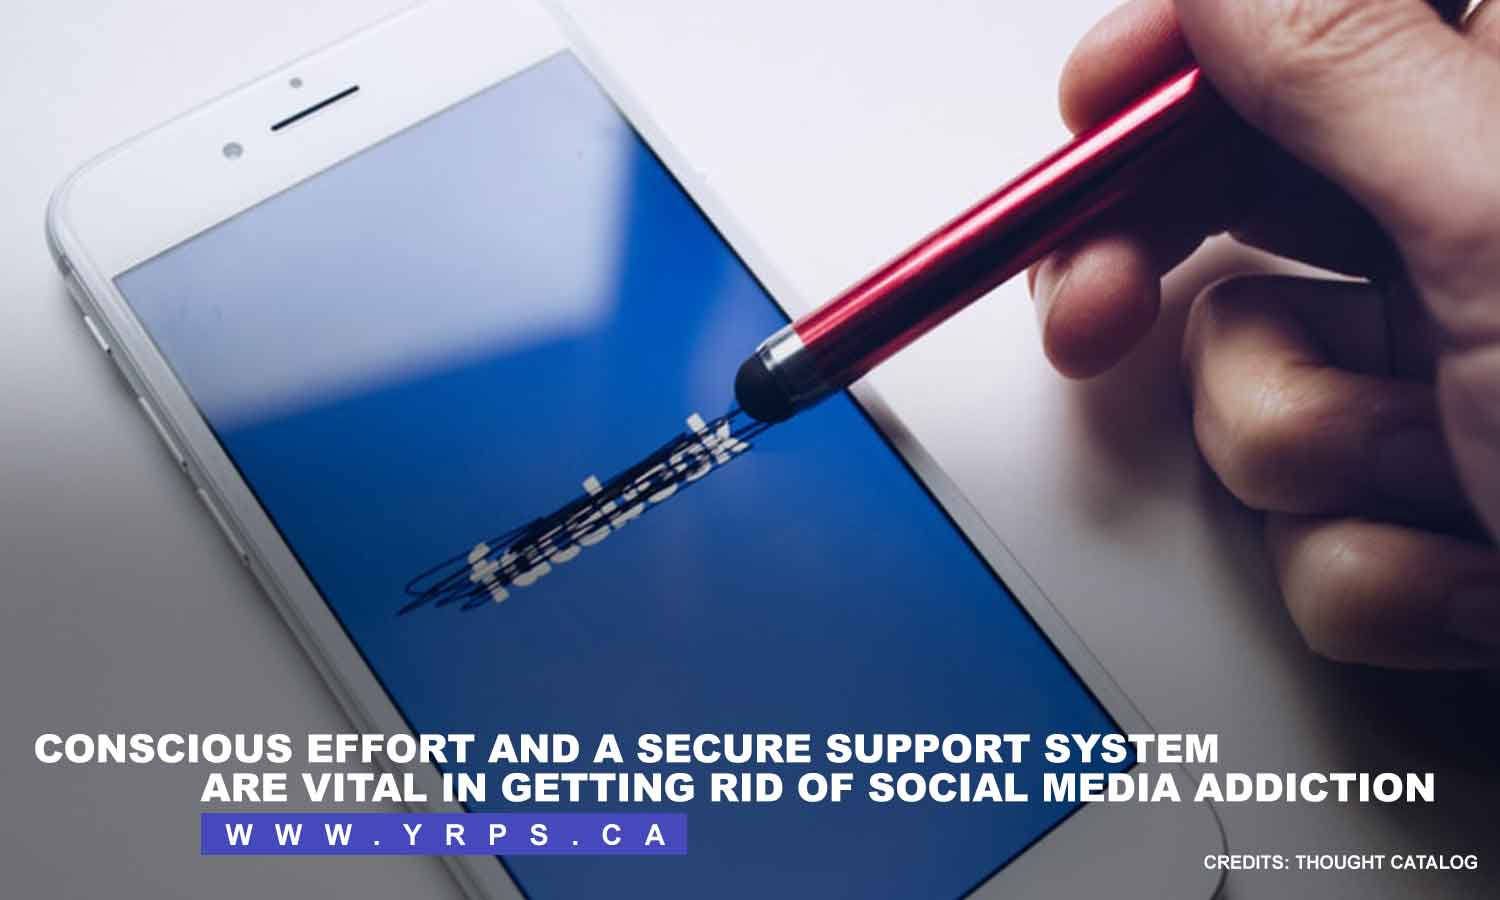 Conscious effort and a secure support system are vital in getting rid of social media addiction